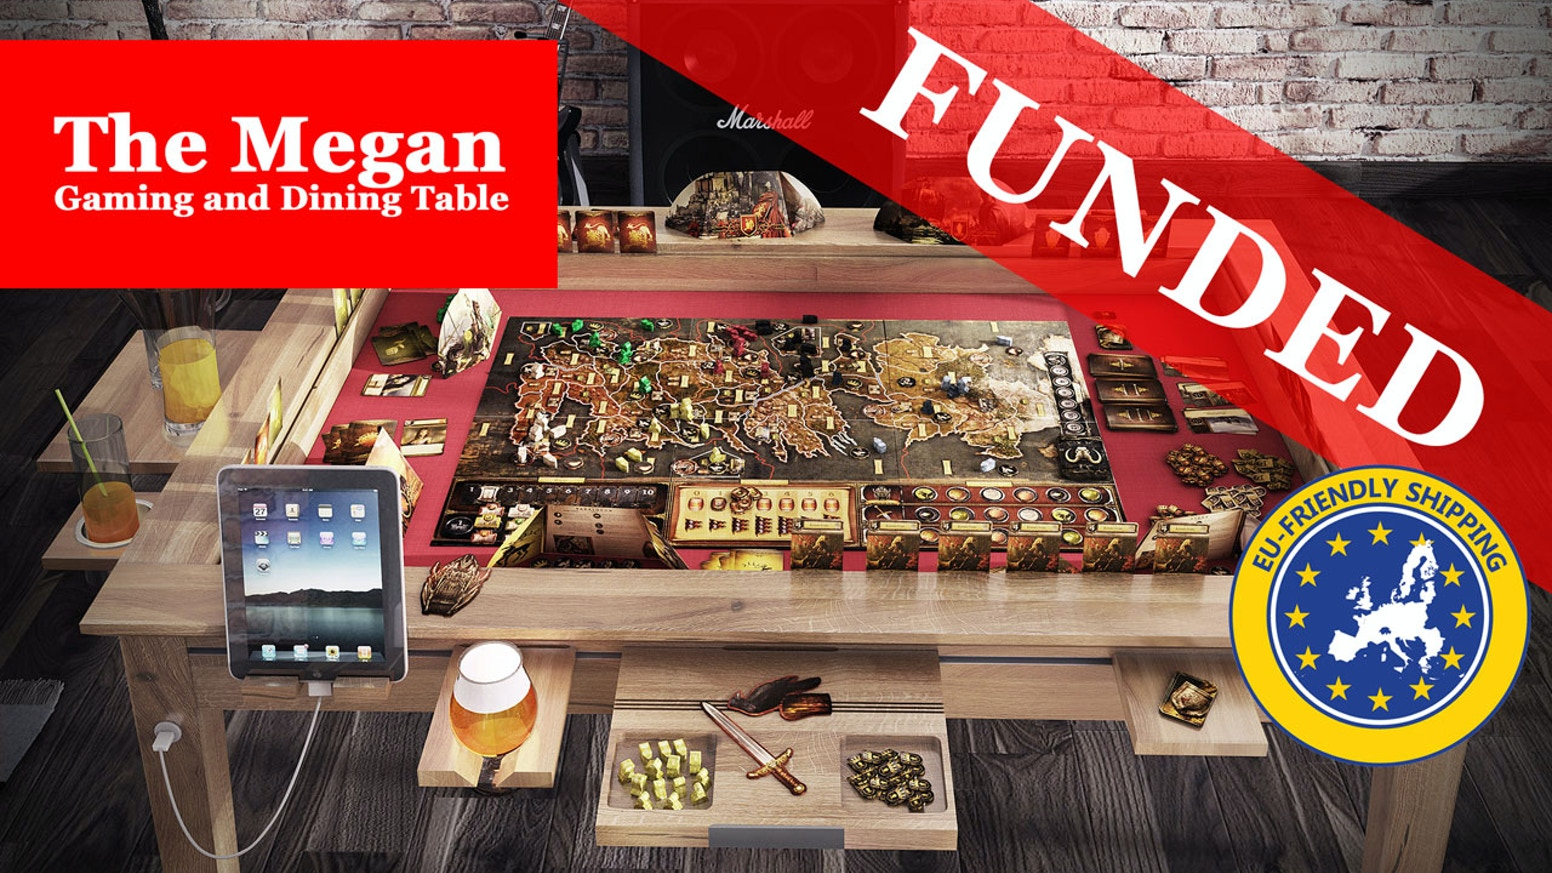 This project is about the gaming table - Megan. If you missed the main campaign, do not worry, you can still purchase an amazing Megan Gaming Table via the late pledge manager.